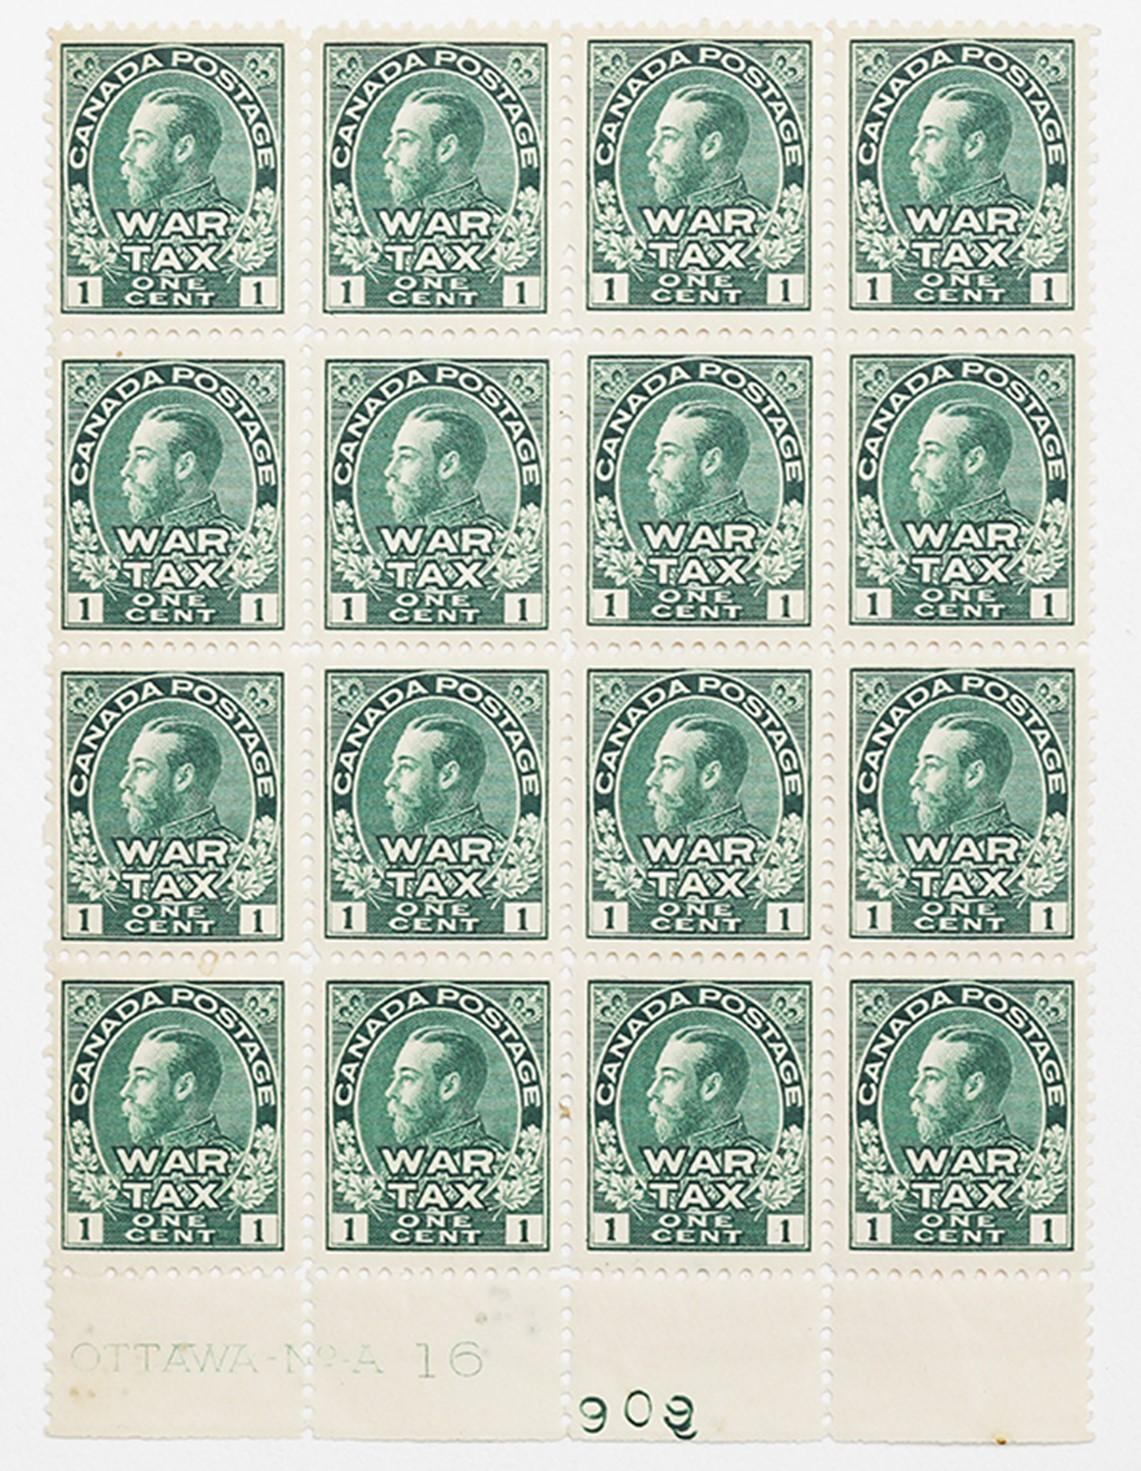 Canada- Rare War Tax FF MRI VF/XF OG Block of 16